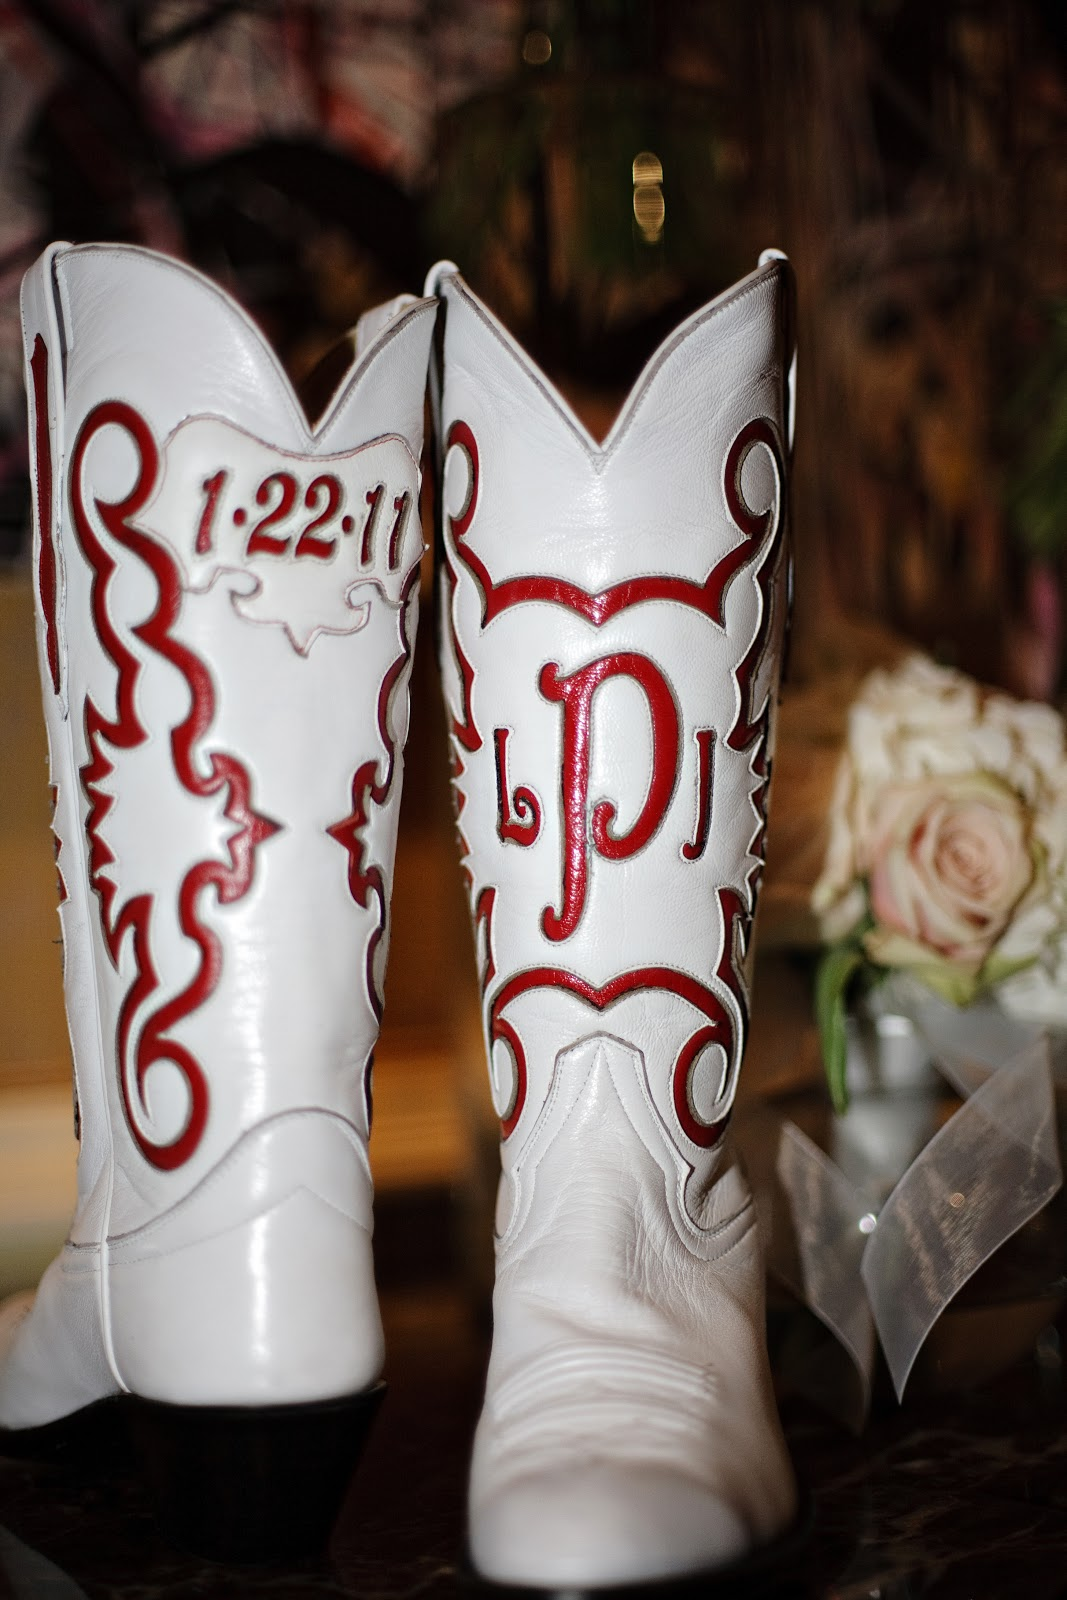 trend alert cowboy boots wedding cowboy boots Stunning custom wedding day boots featuring bride s new monogram and her wedding date photo by www vimstudio com